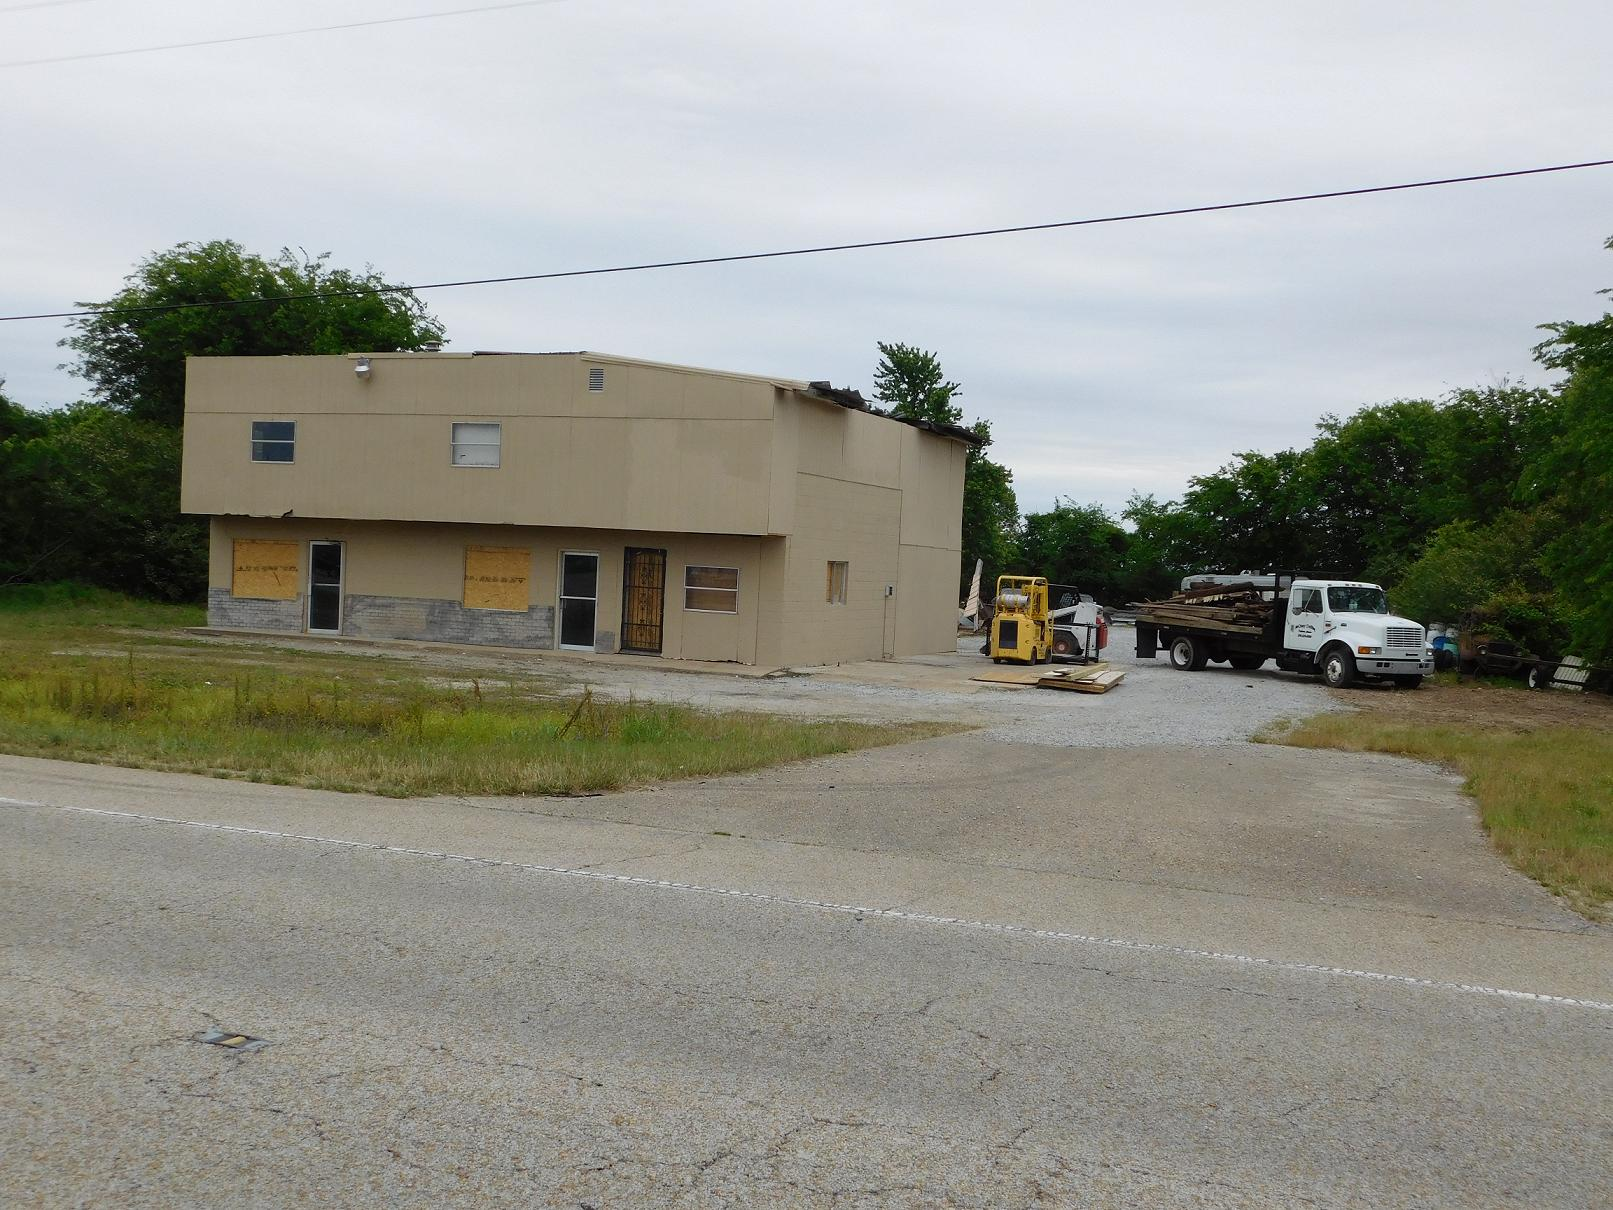 A building, up for condemnation, on U.S. 67 North in Walnut Ridge.